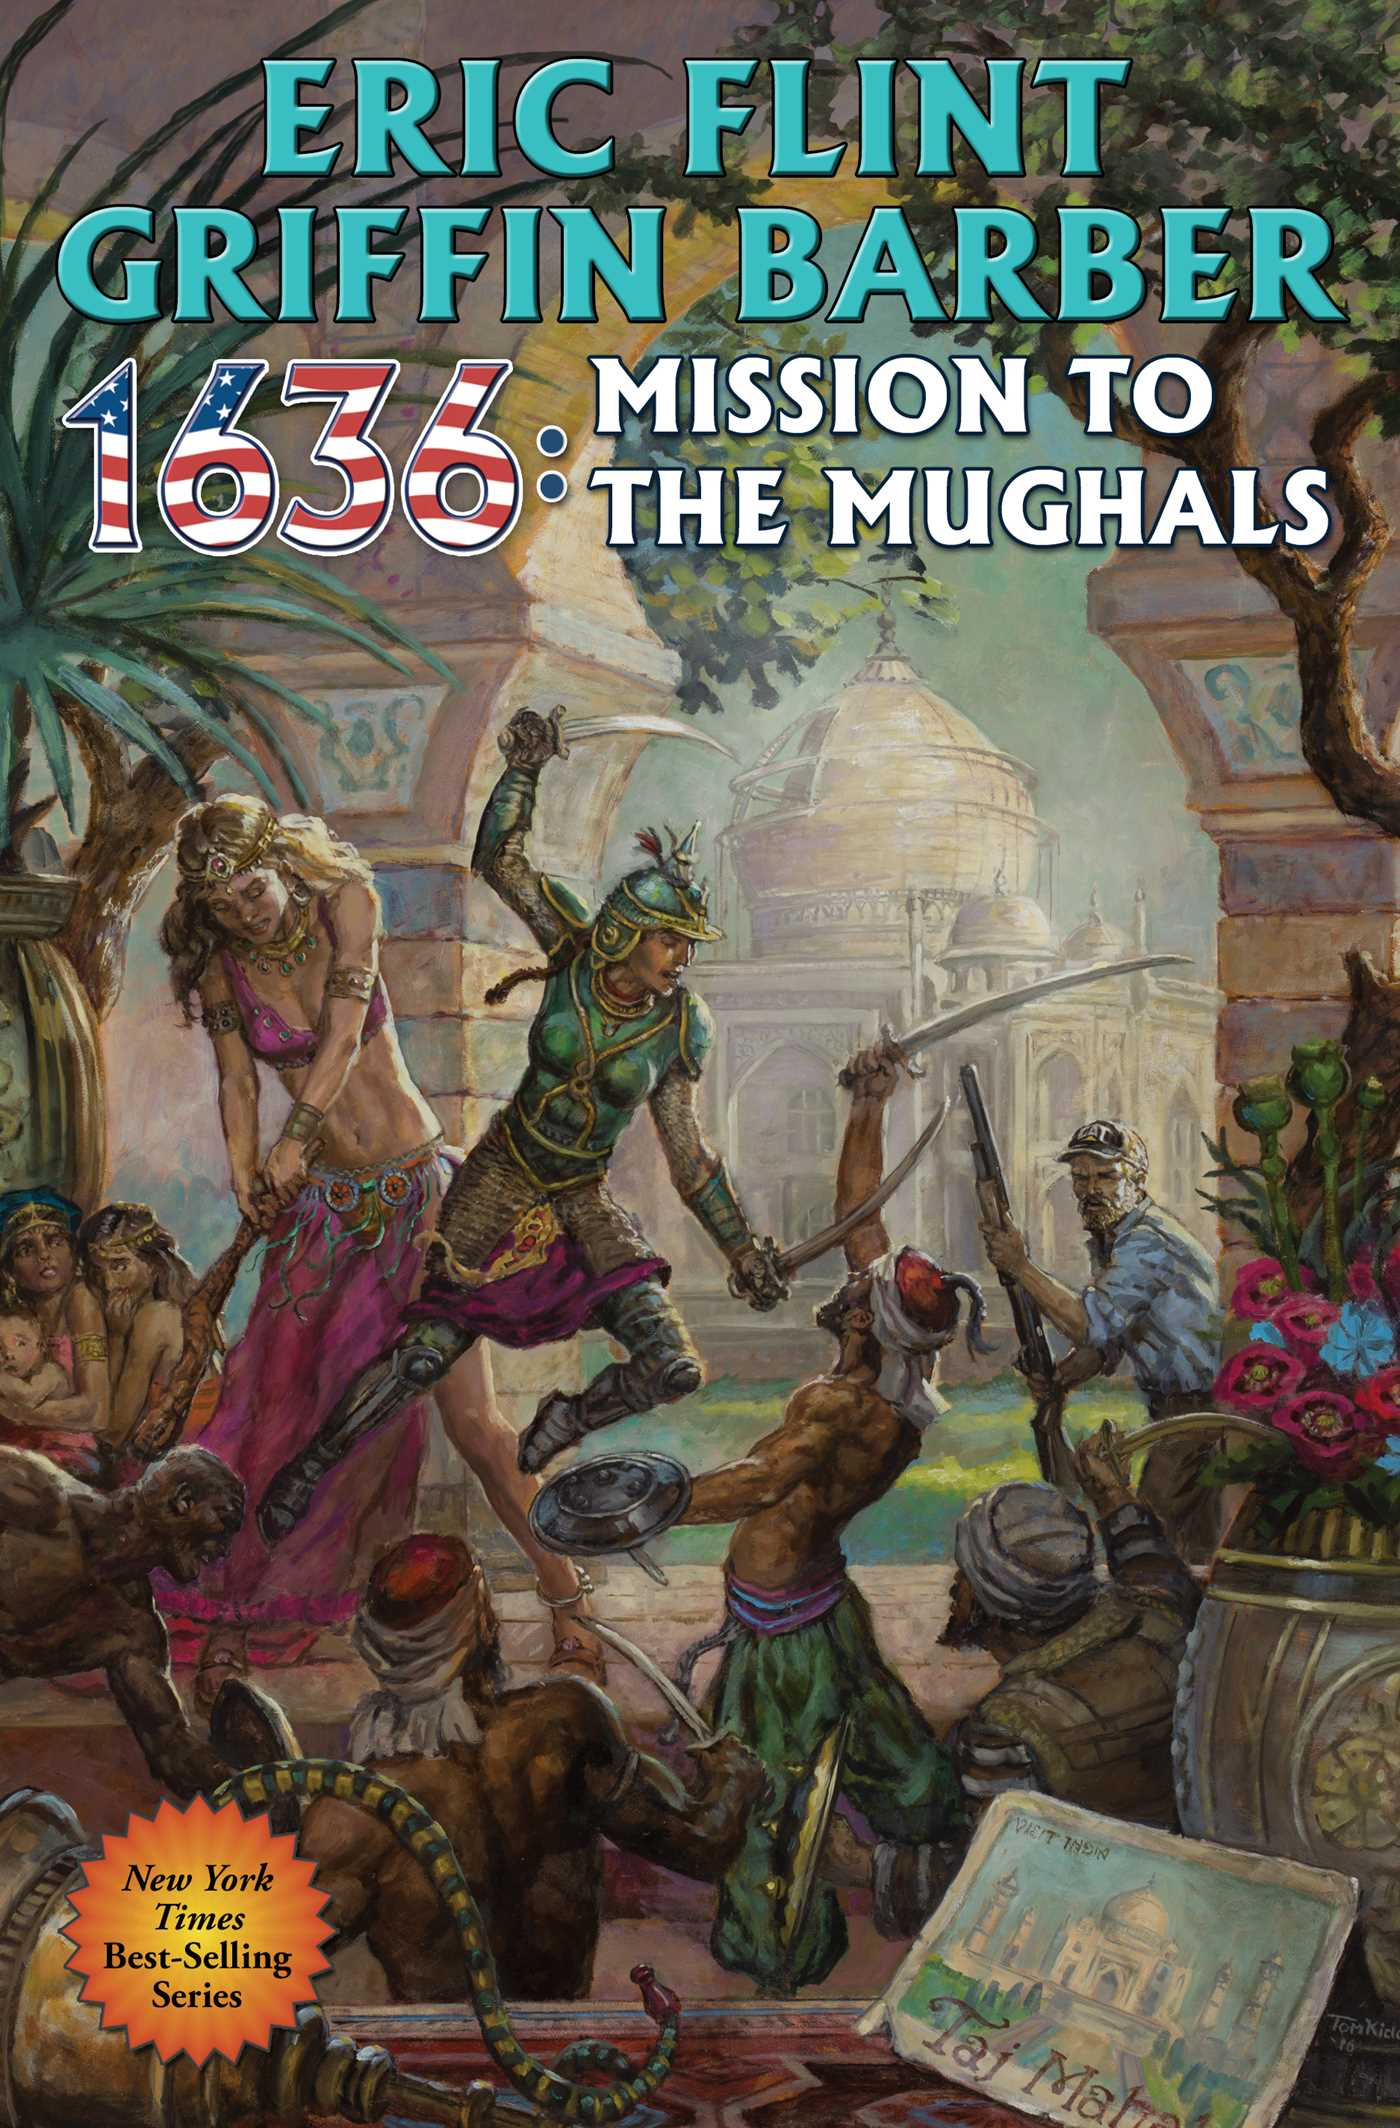 1636 mission to the mughals 9781476782140 hr